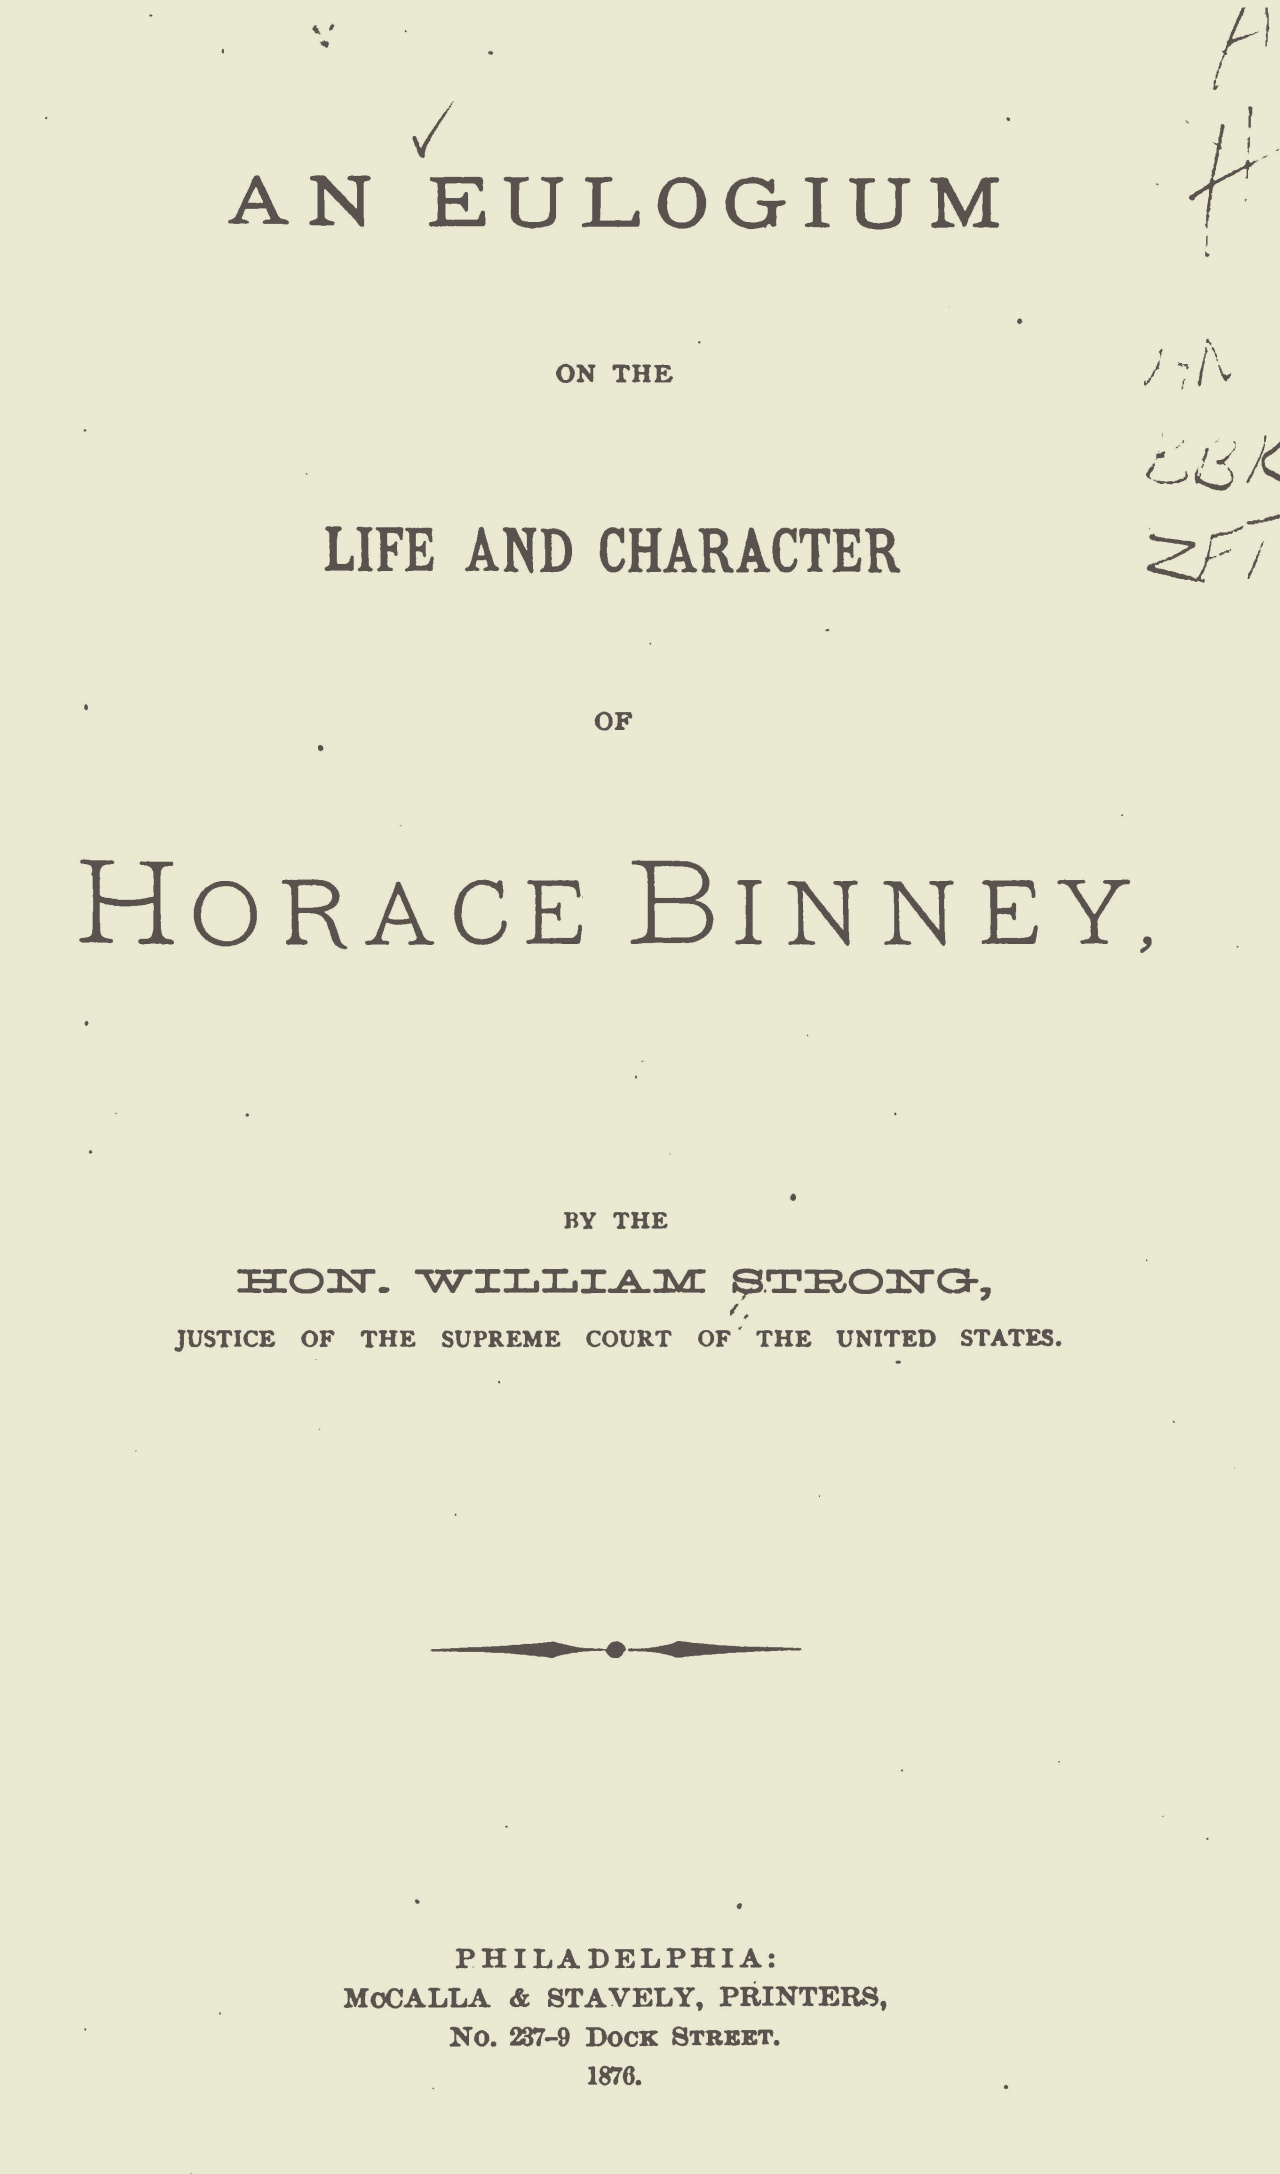 Strong, William, An Eulogium on the Life and Character of Horace Binney Title Page.jpg